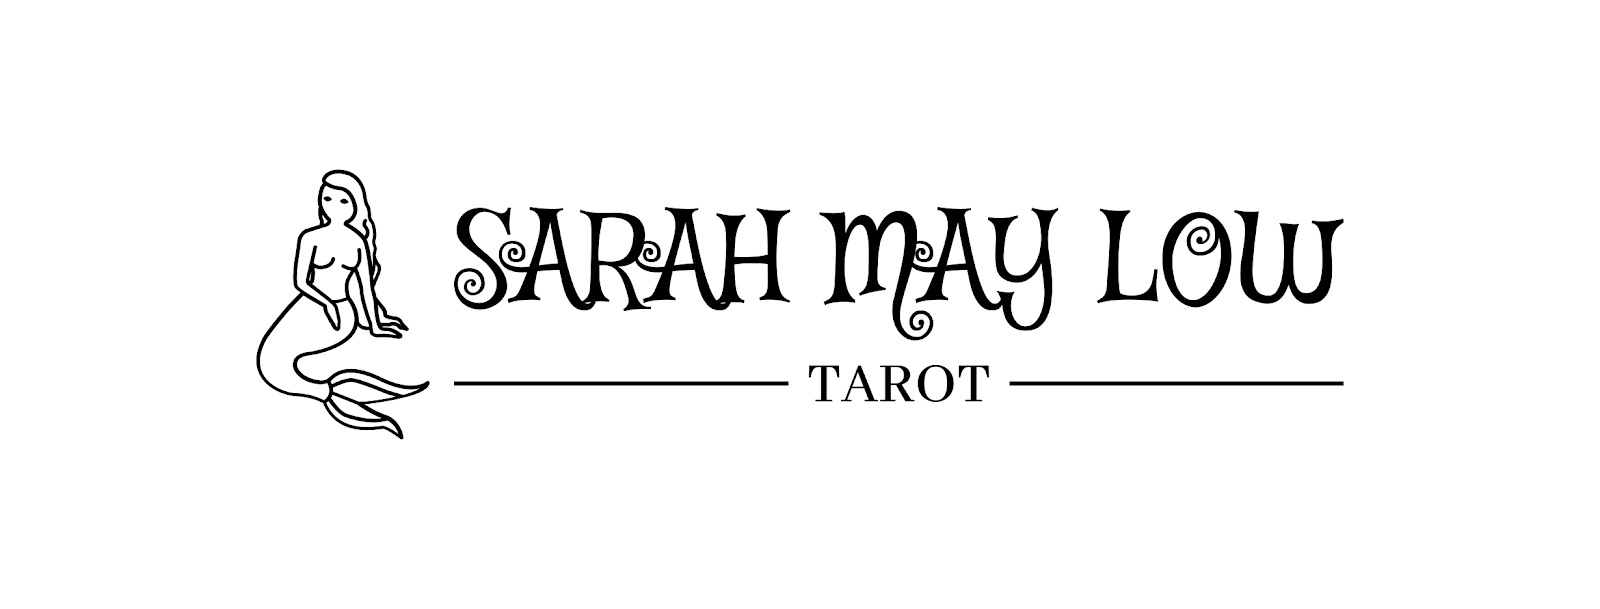 www.sarahlow.net | Malaysia Tarot Queen Sarah May Low